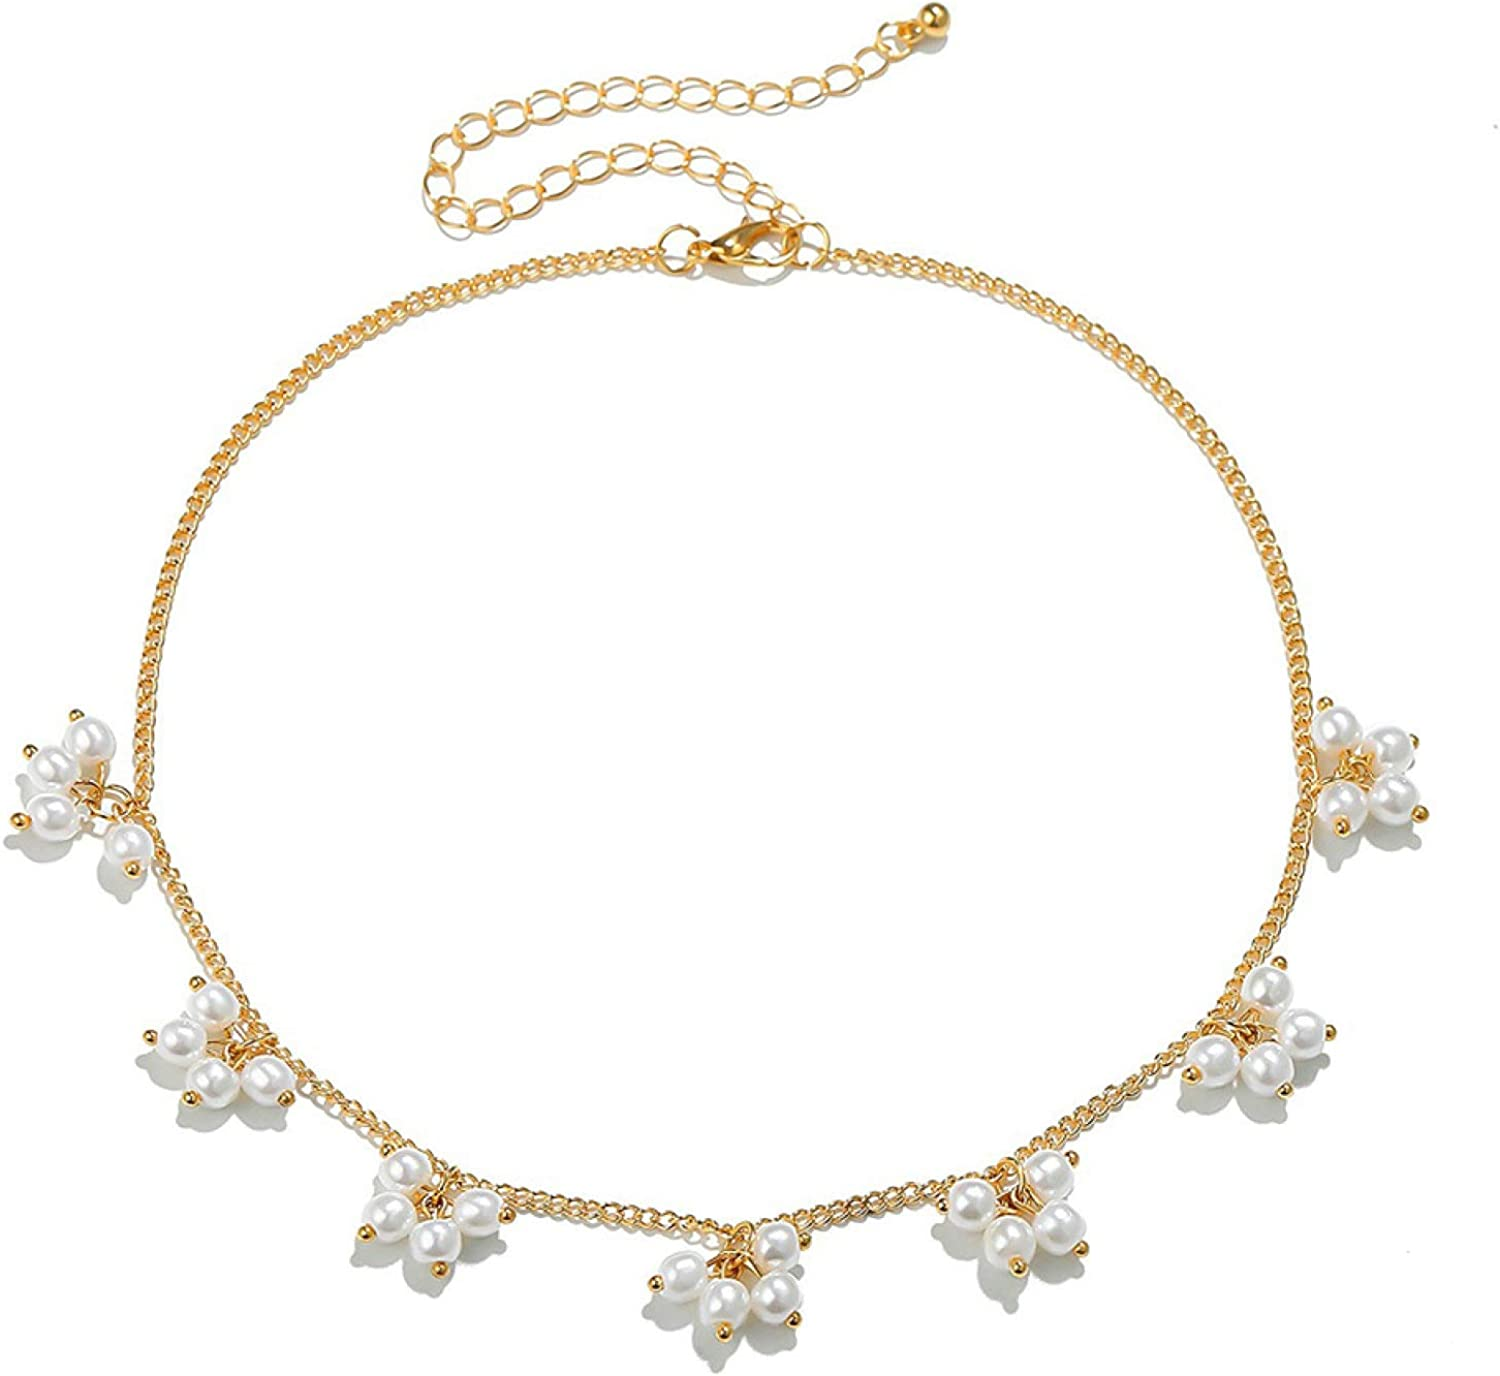 Faux Pearl Flower Charlotte Mall Adjustable Choker Clavicle Jewe Necklace Bargain Chain